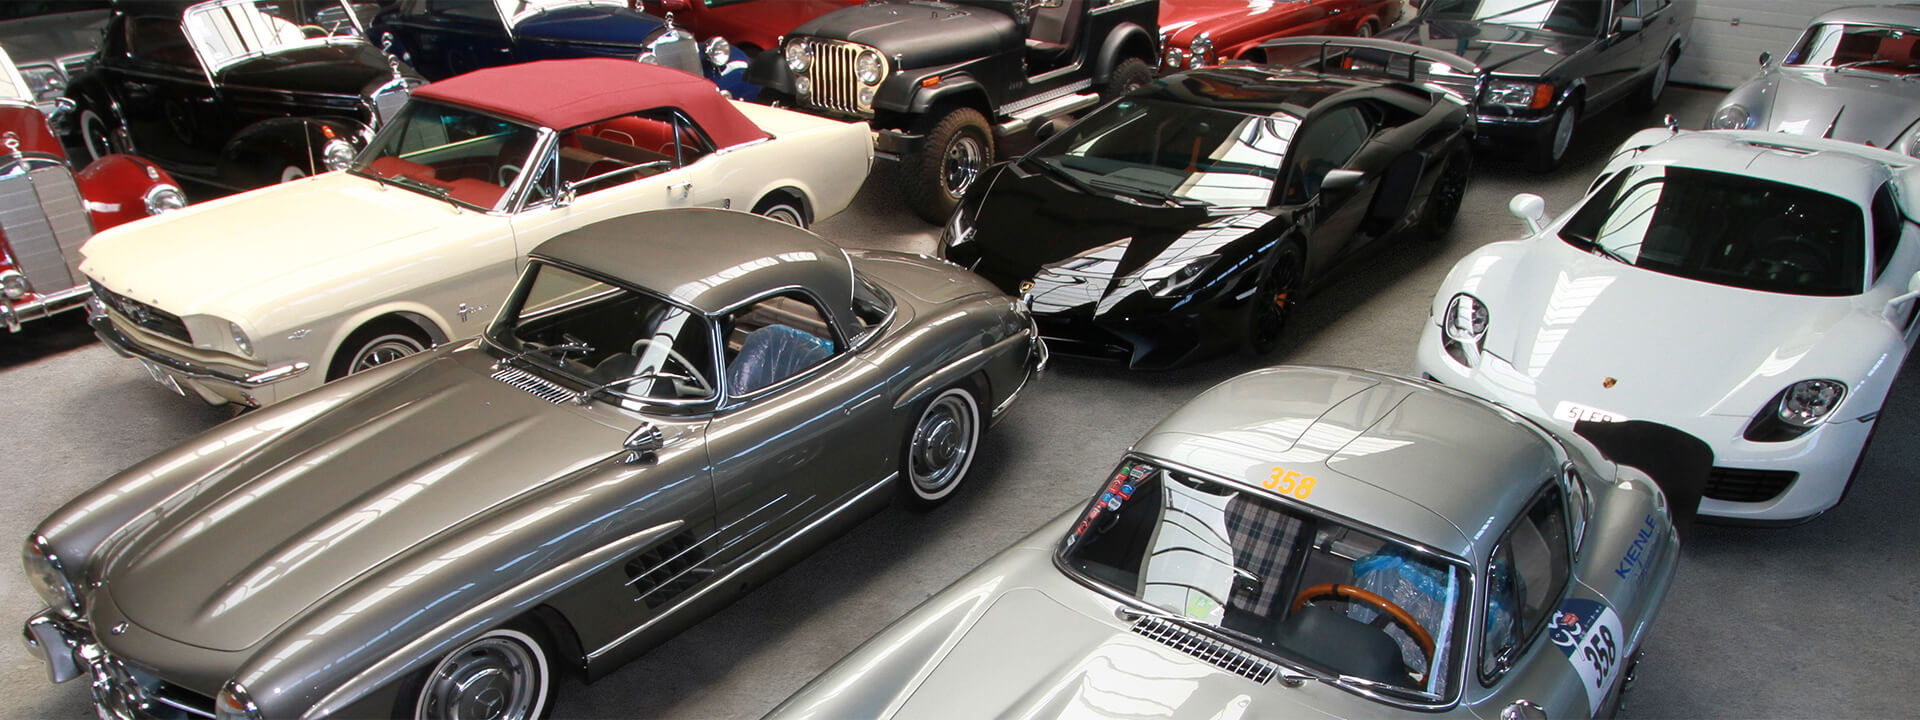 The Mercedes 300 SL and other supercars and classic cars in the Kienle showroom